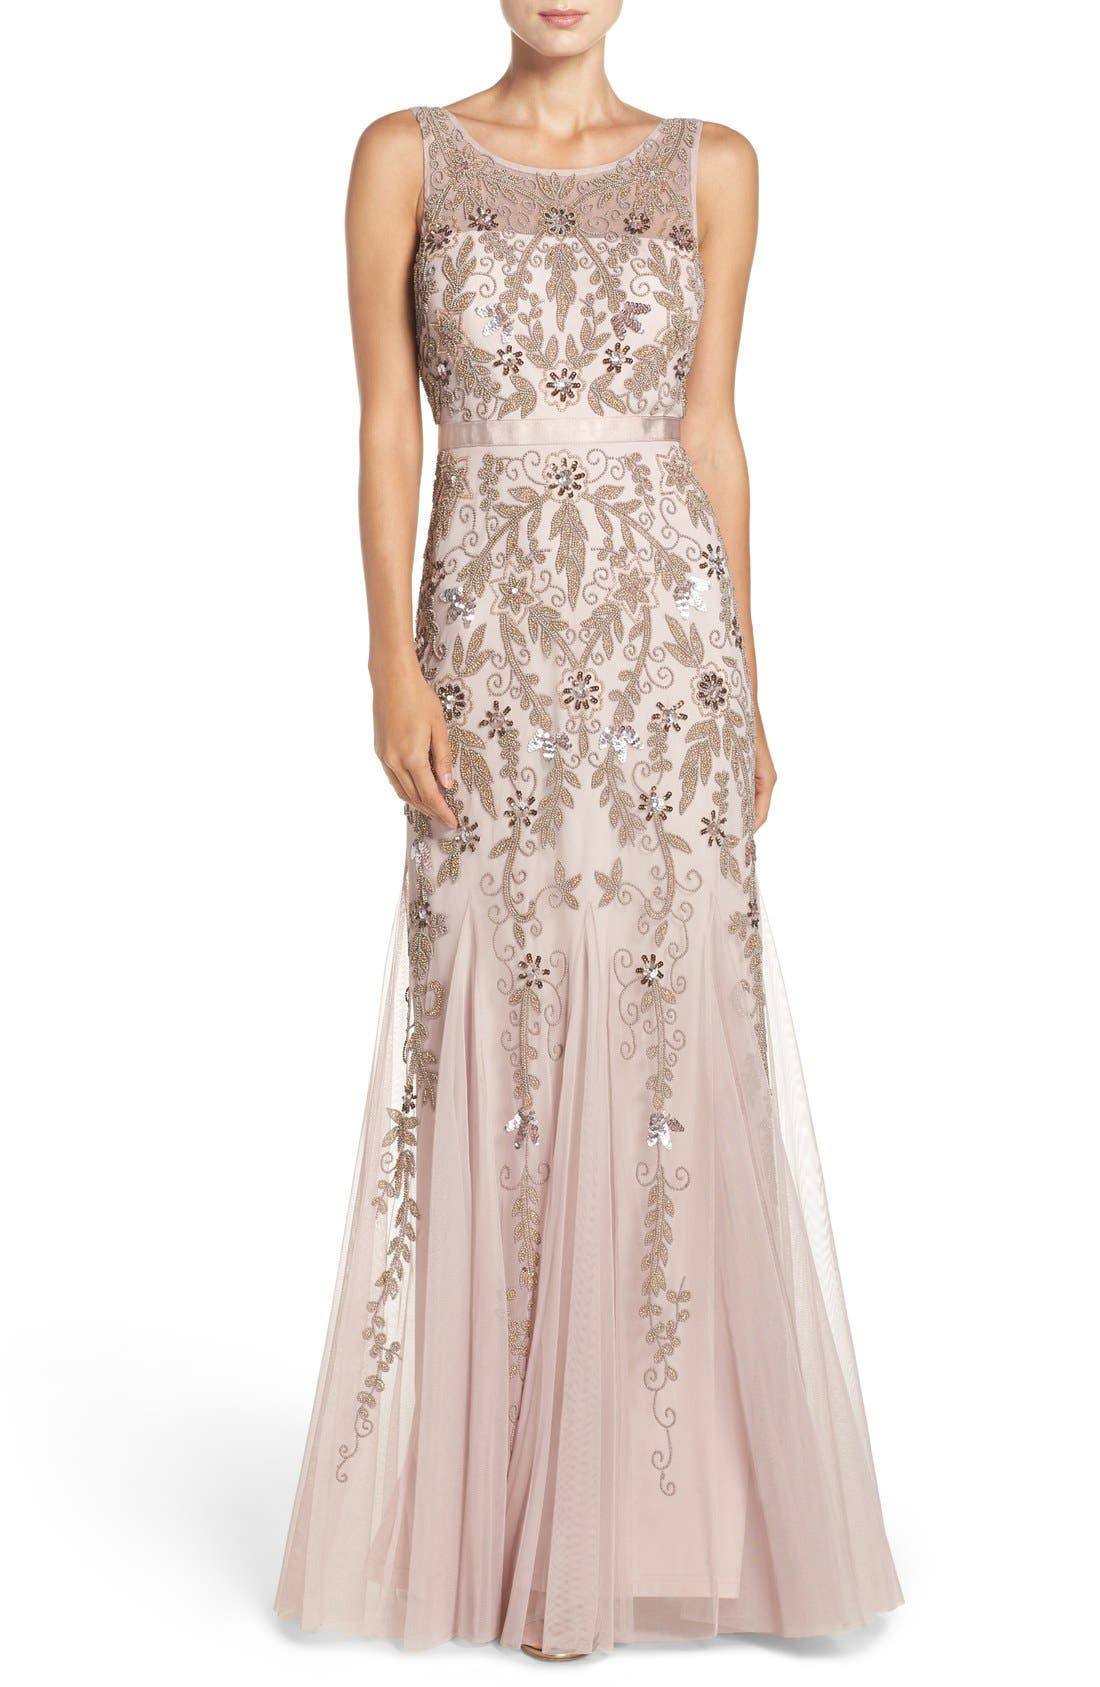 Alternate Image 1 Selected - Adrianna Papell Embellished Mesh Mermaid Gown (Regular & Petite)